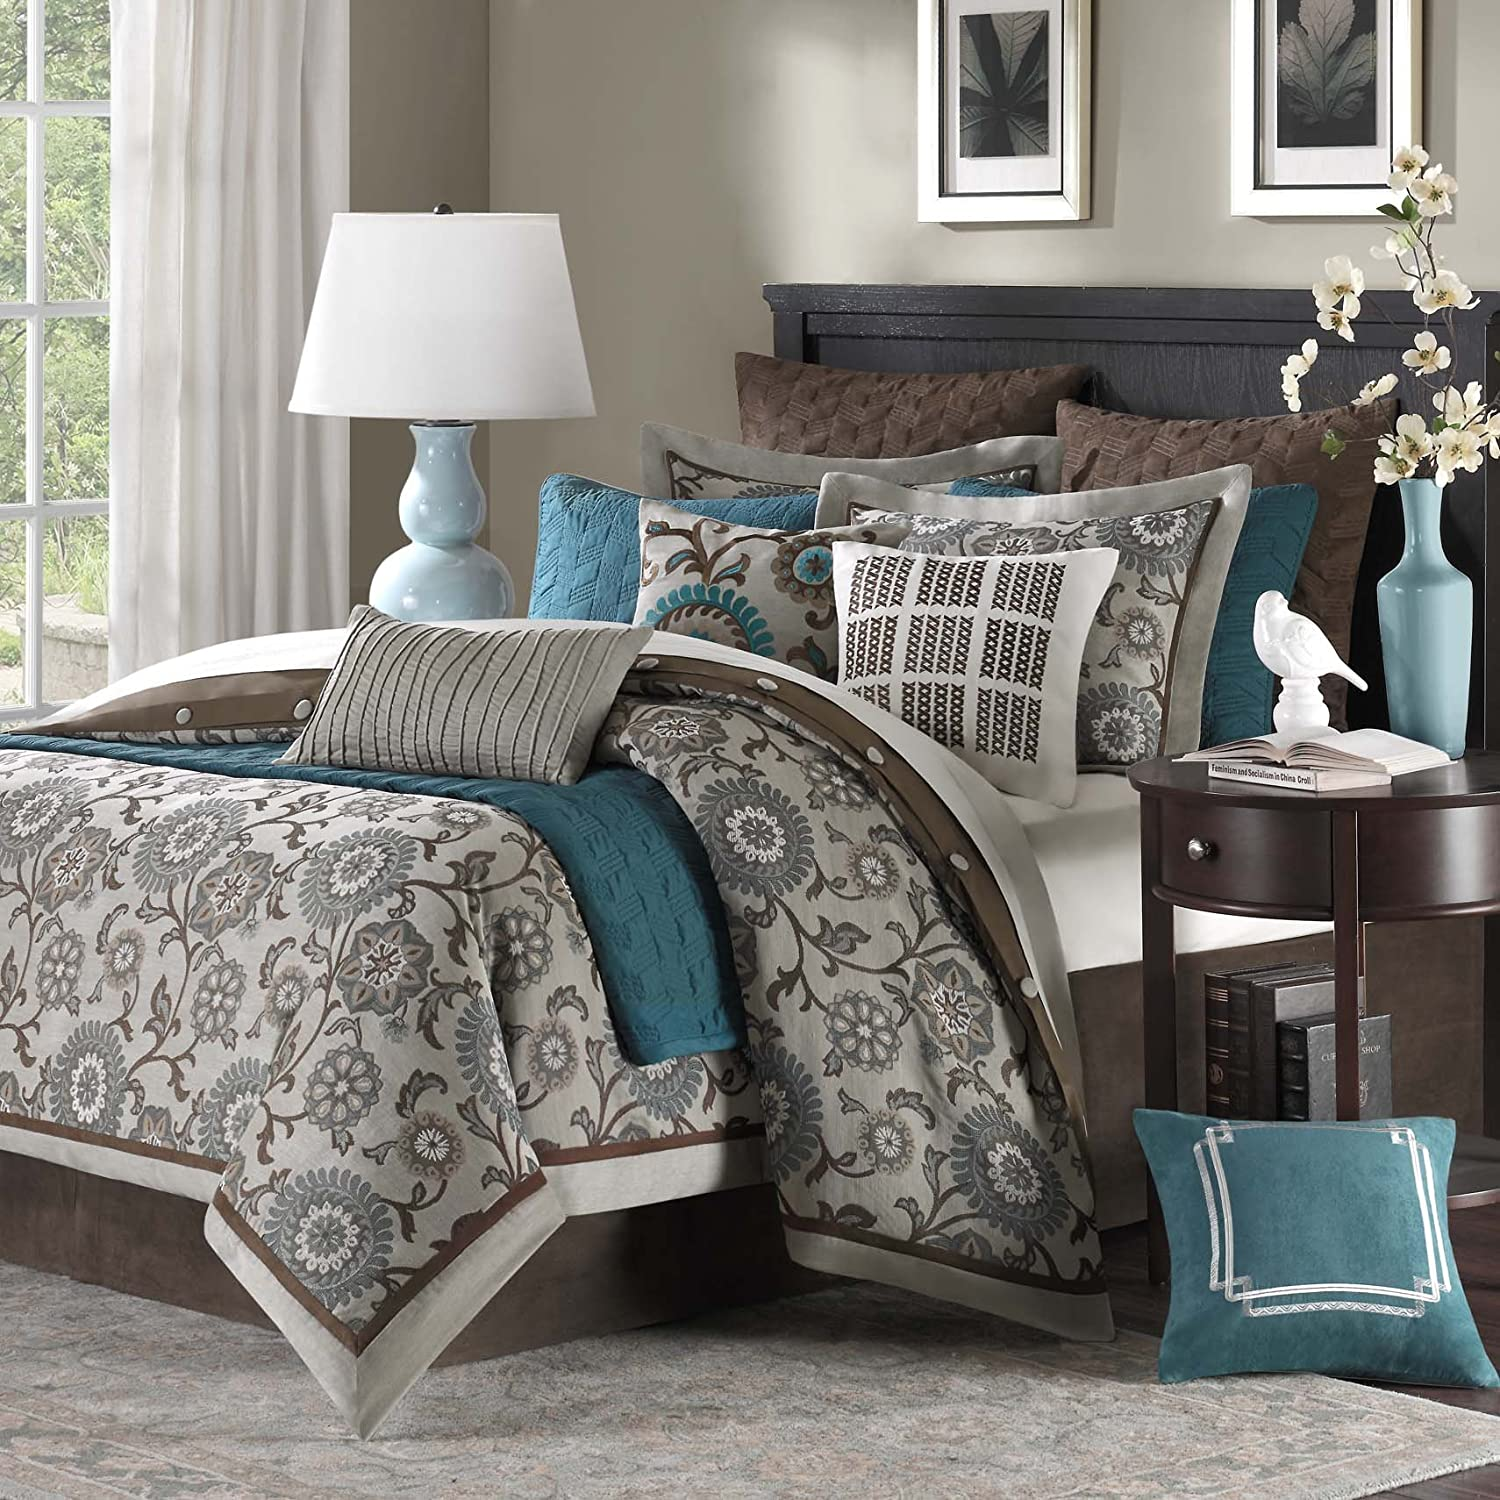 Bedding sets turquoise - Teal And Brown Bedding And Comforter Sets